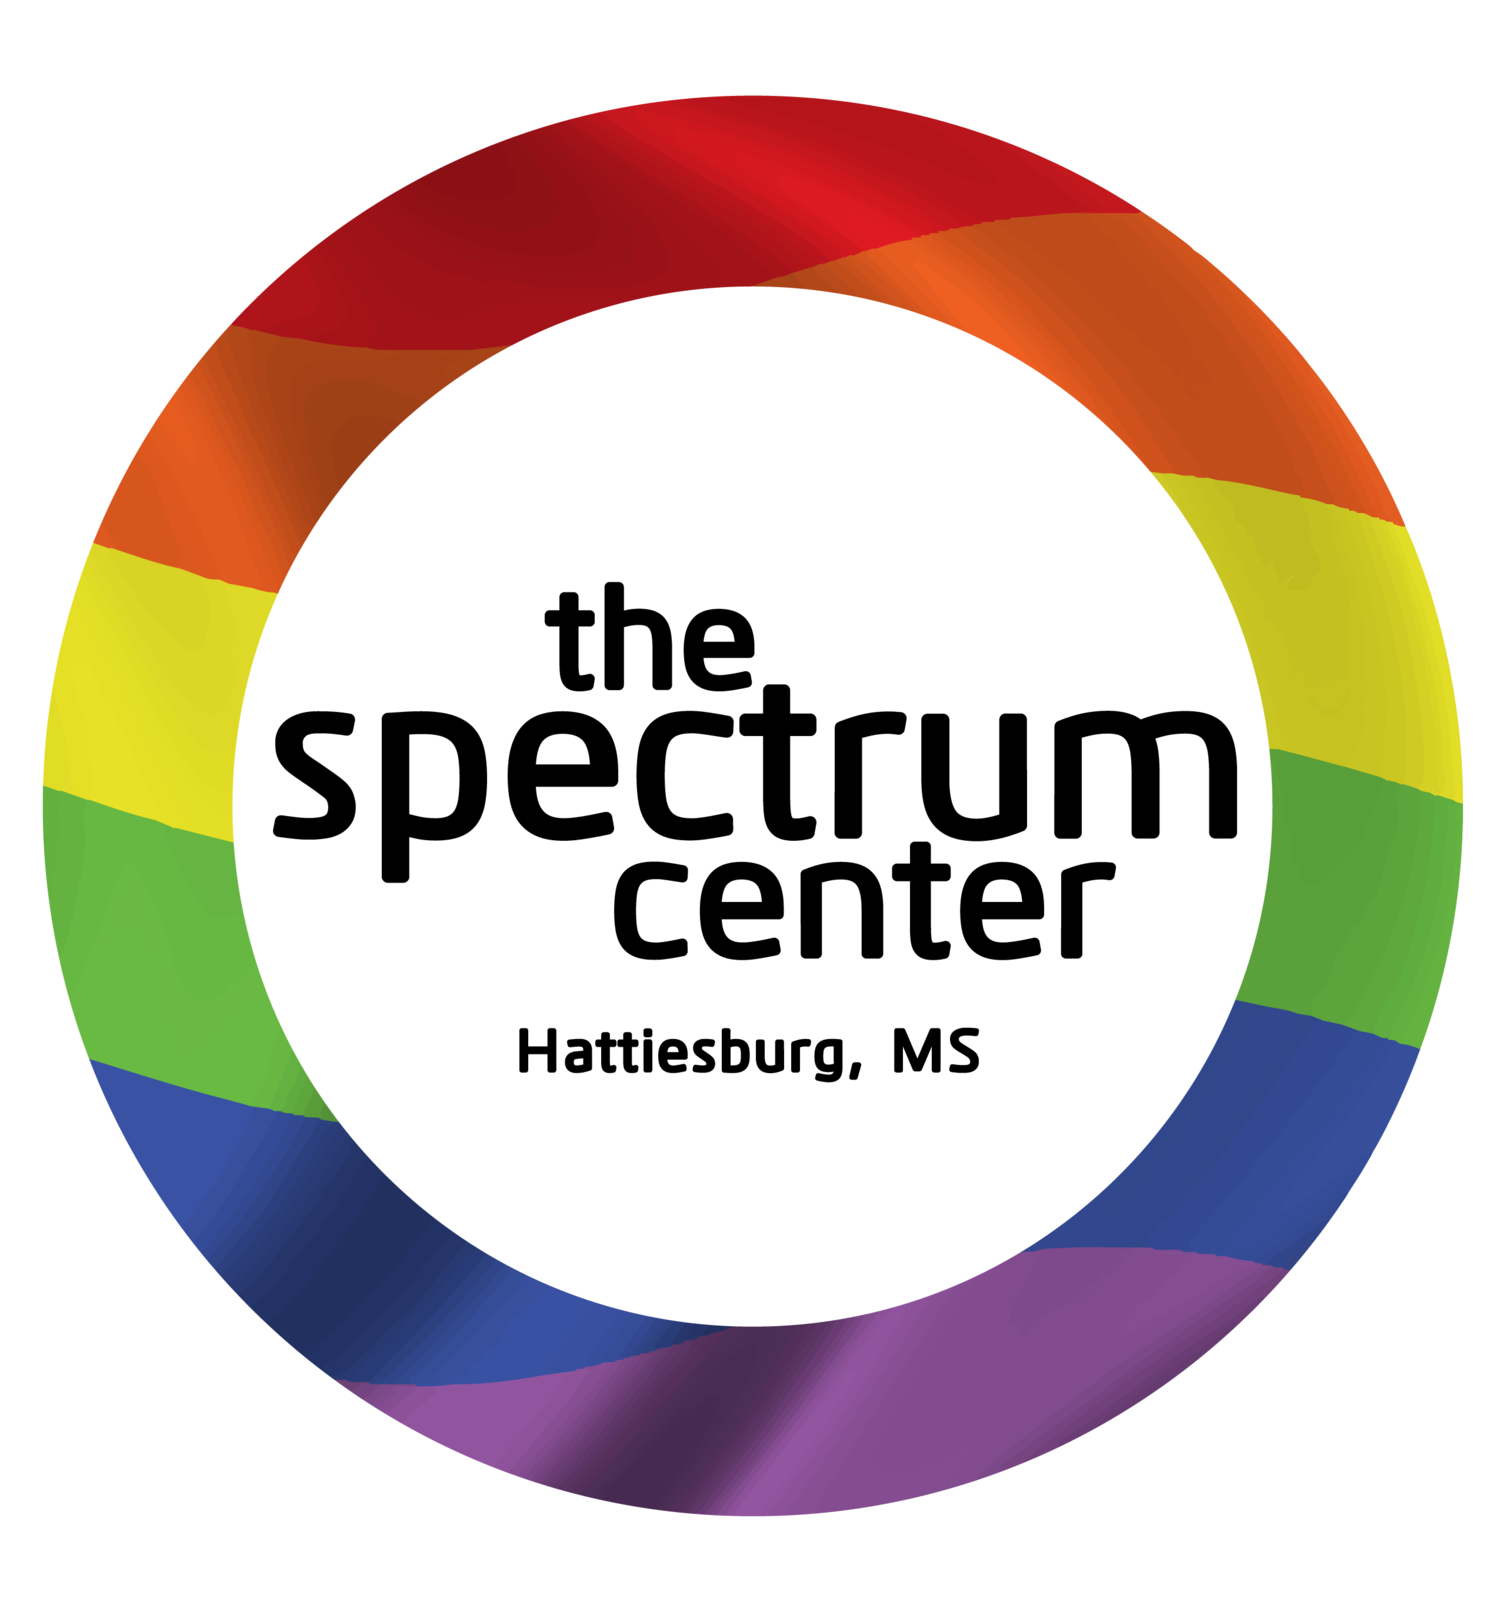 The Spectrum Center